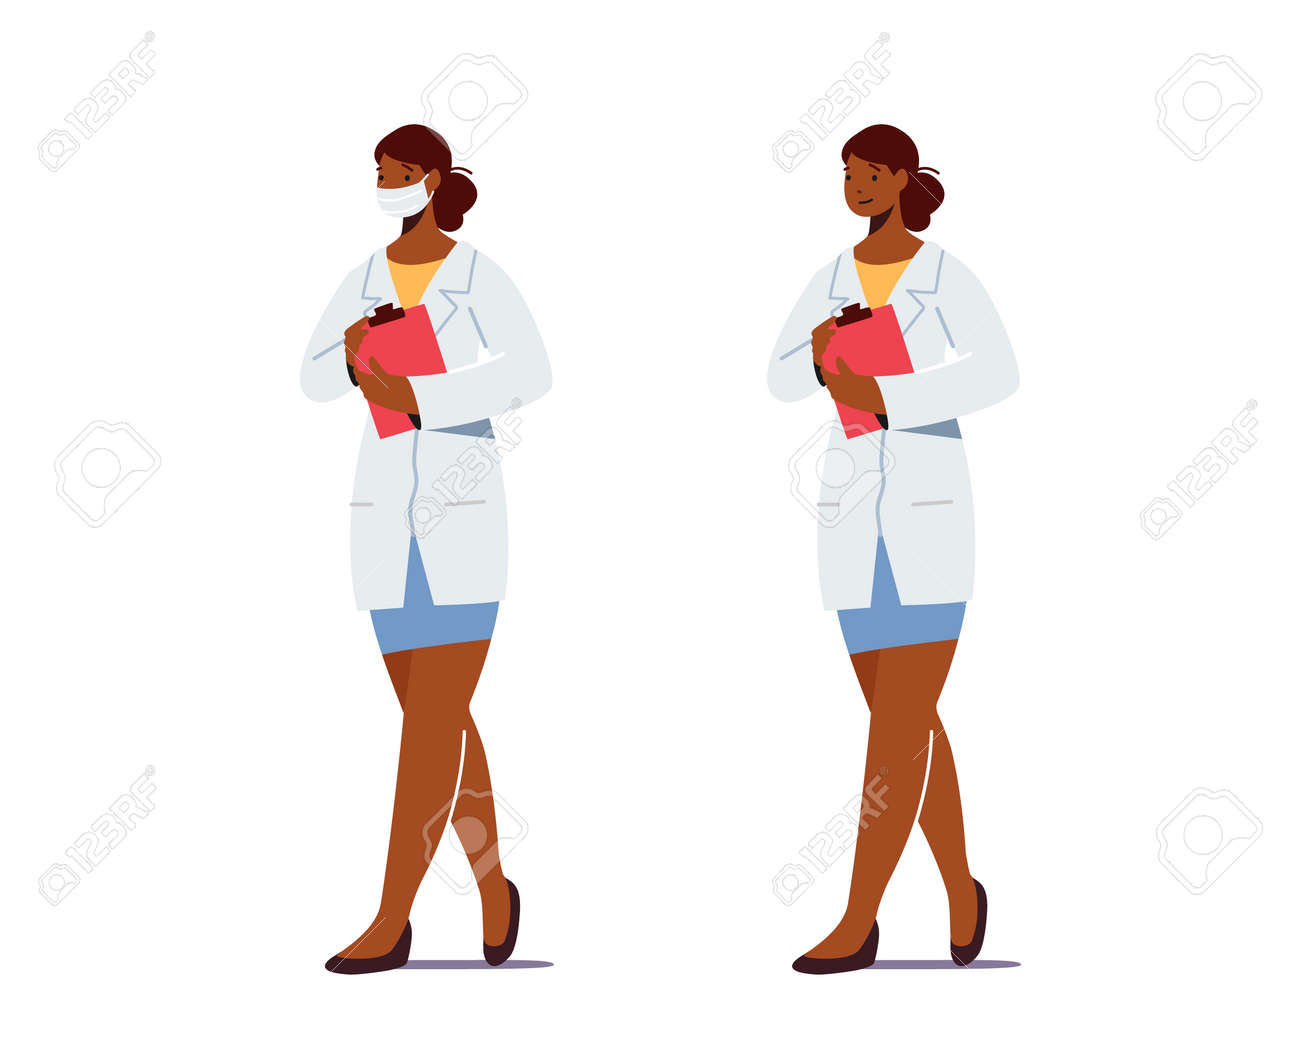 Doctor or Nurse Female Character Physician in White Robe with Clip Board Wear Medical Mask. Clinic, Hospital Staff Work - 166740356